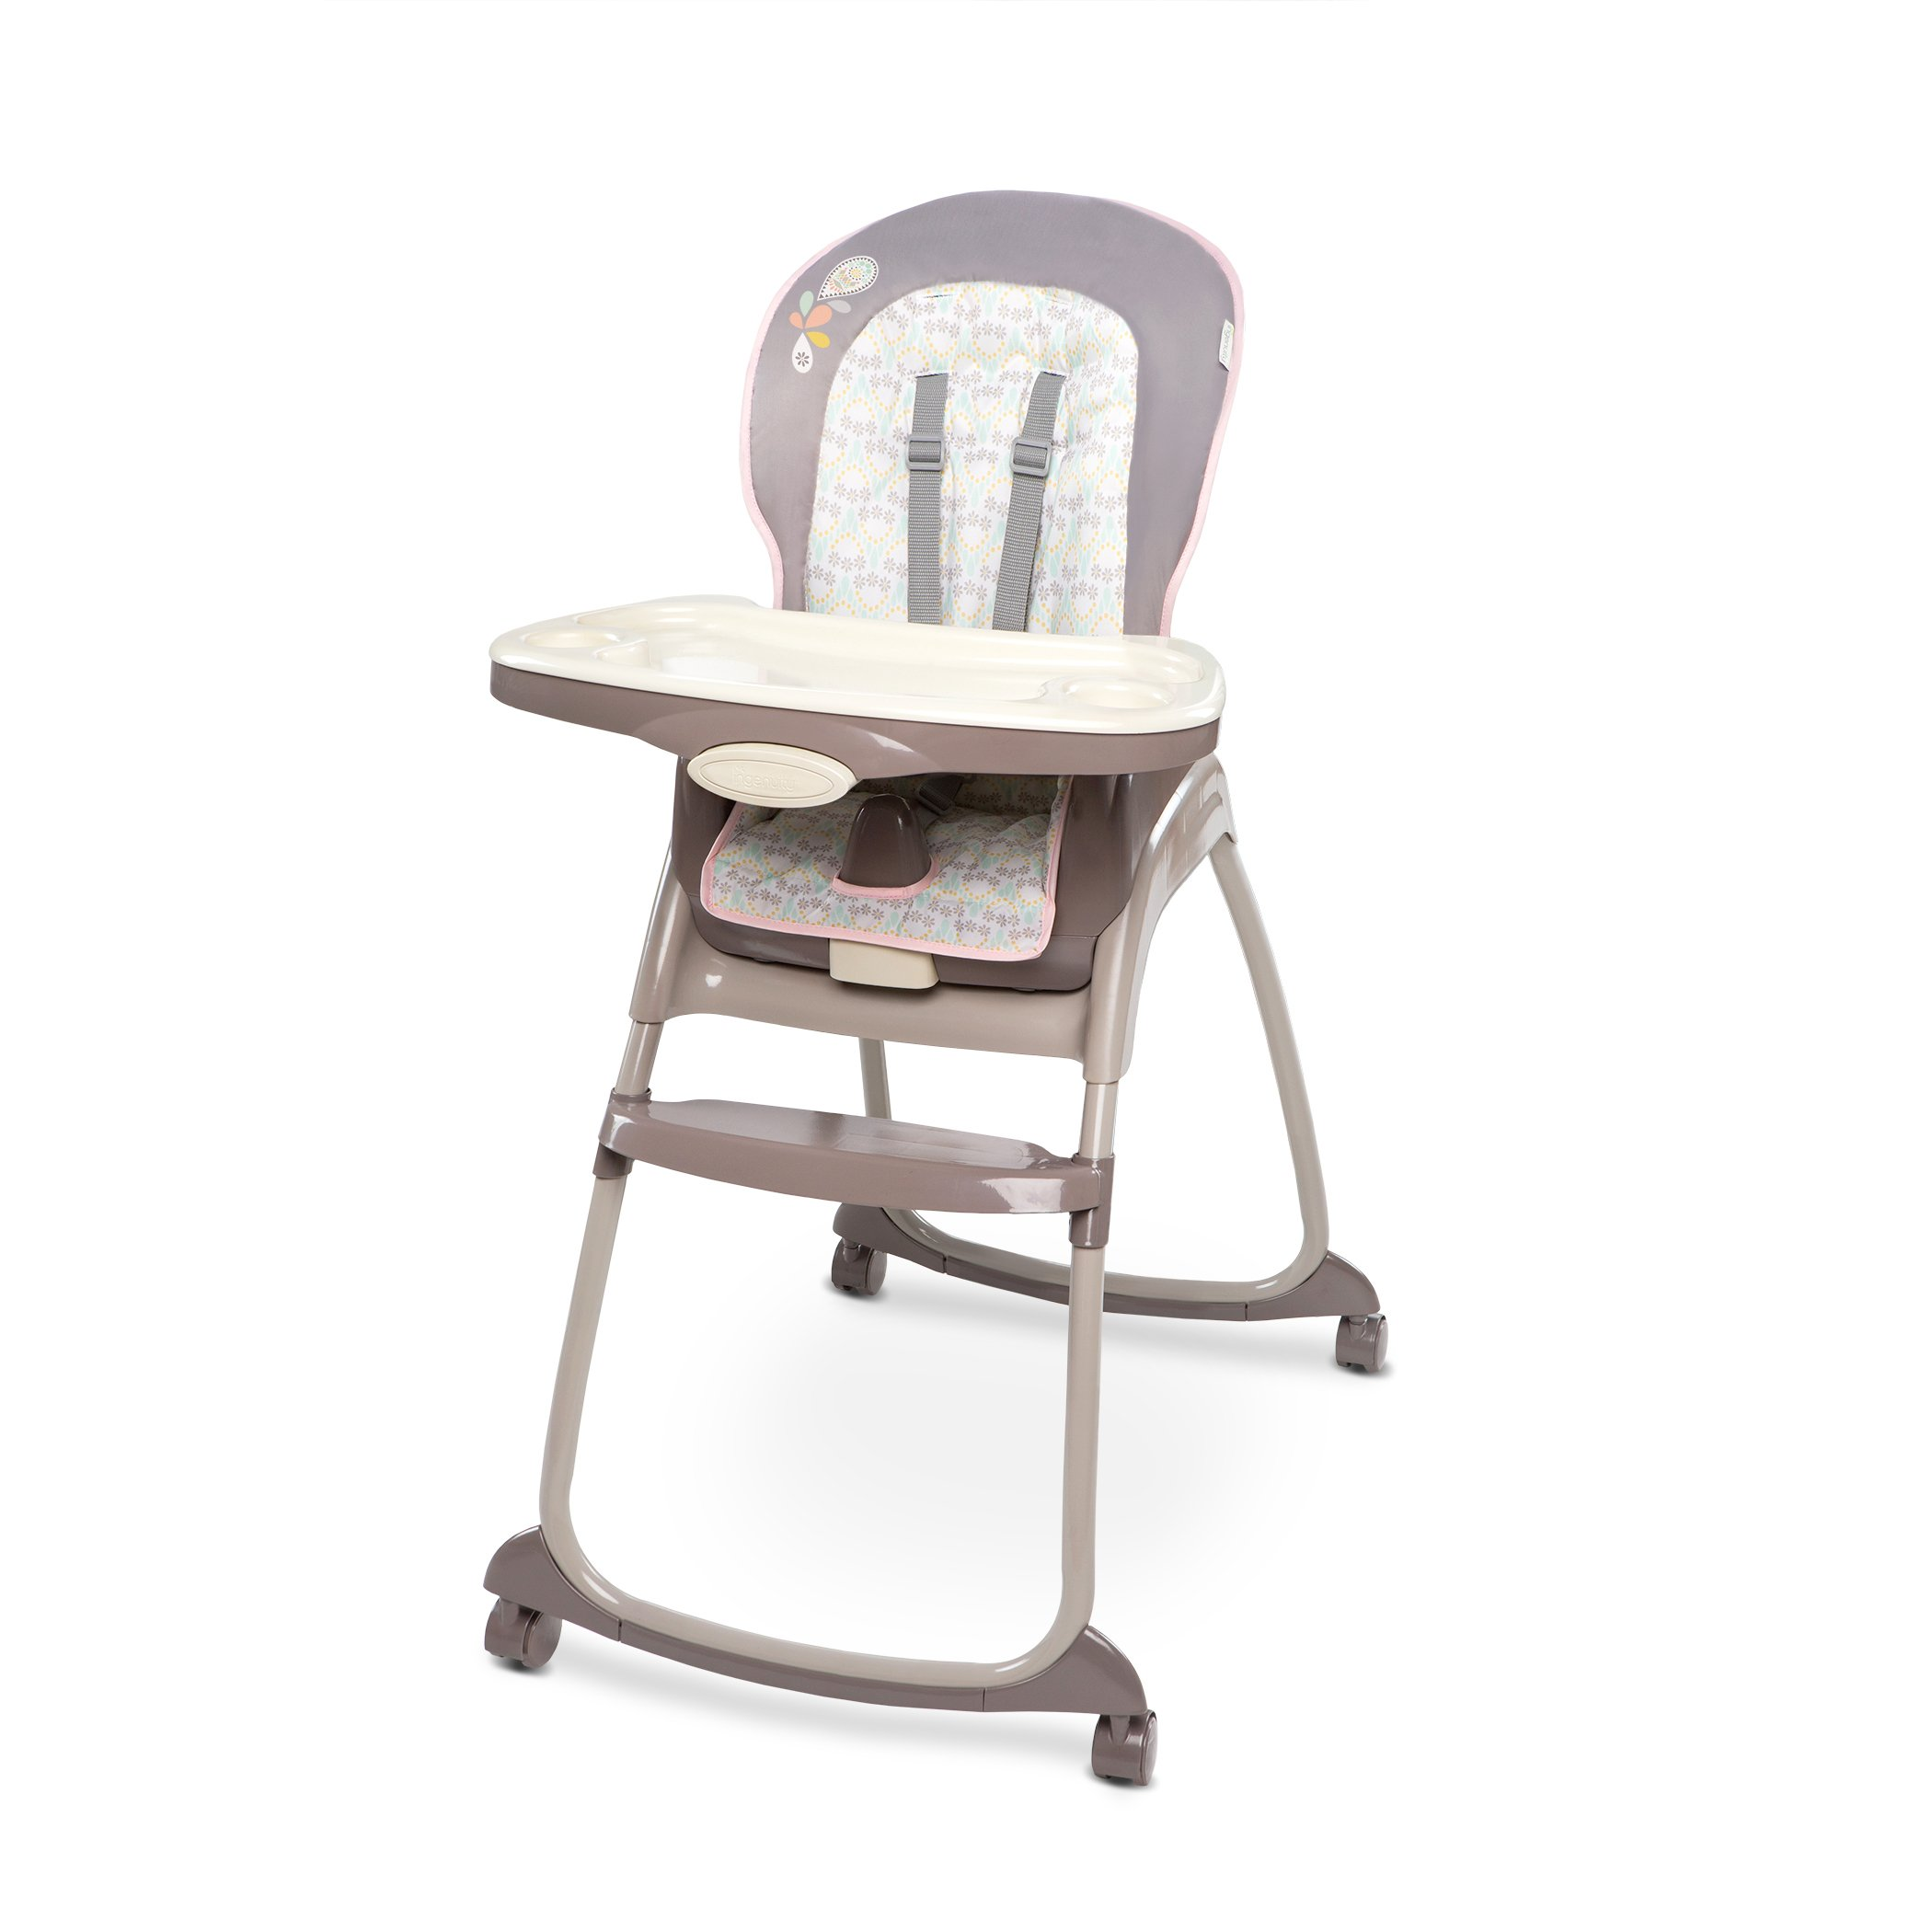 Ingenuity Trio 3-in-1 High Chair, Deluxe Piper